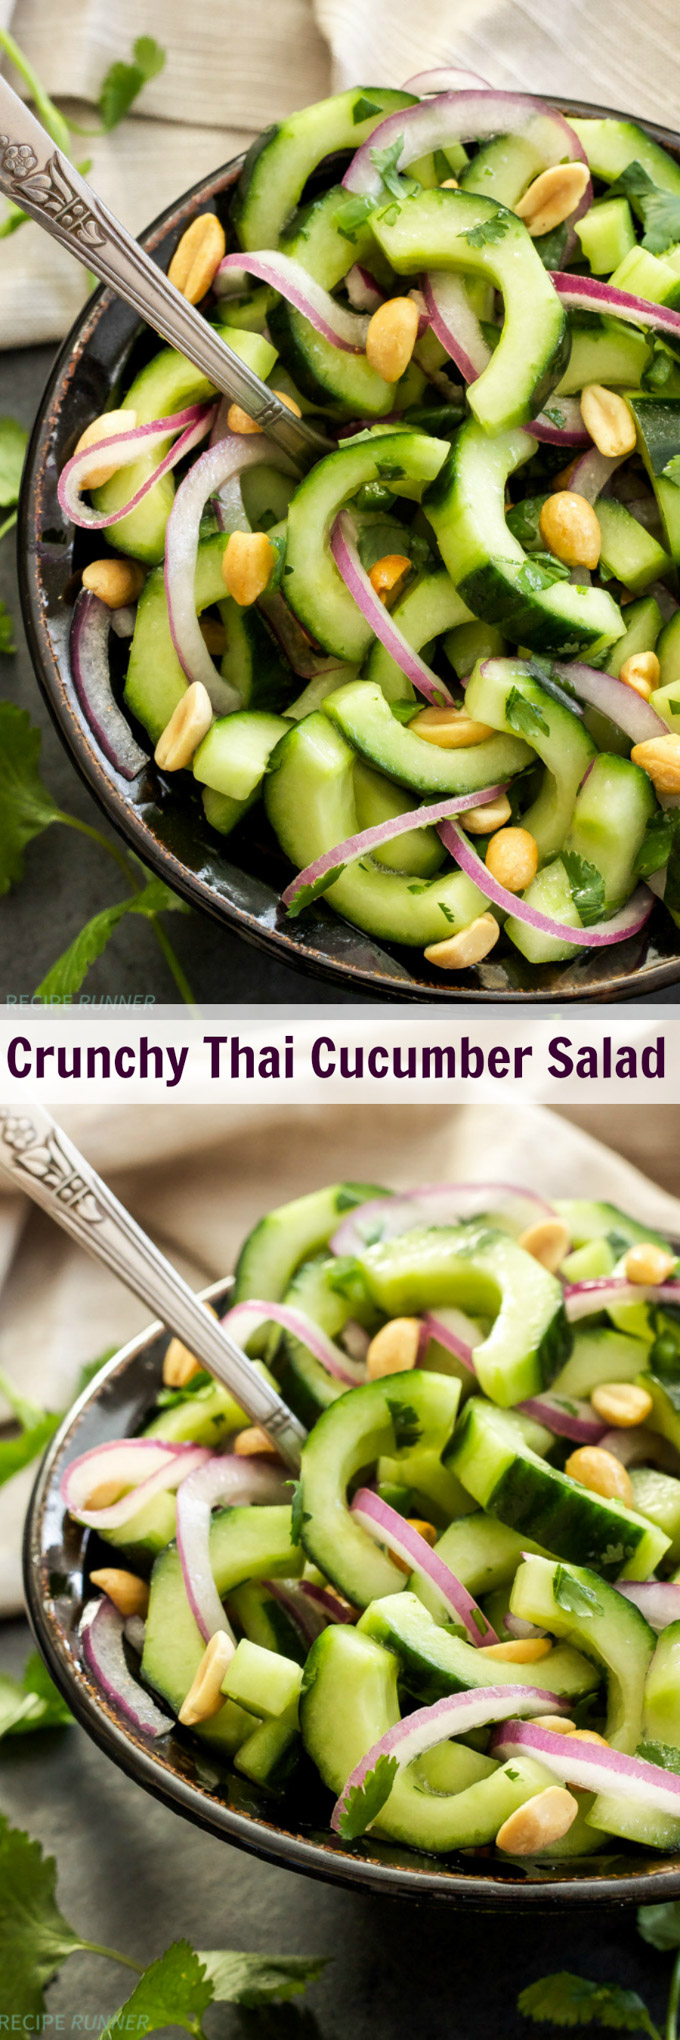 Crunchy Thai Cucumber Salad | This Crunchy Thai Cucumber Salad is a little sweet, a little spicy and a whole lot of good!